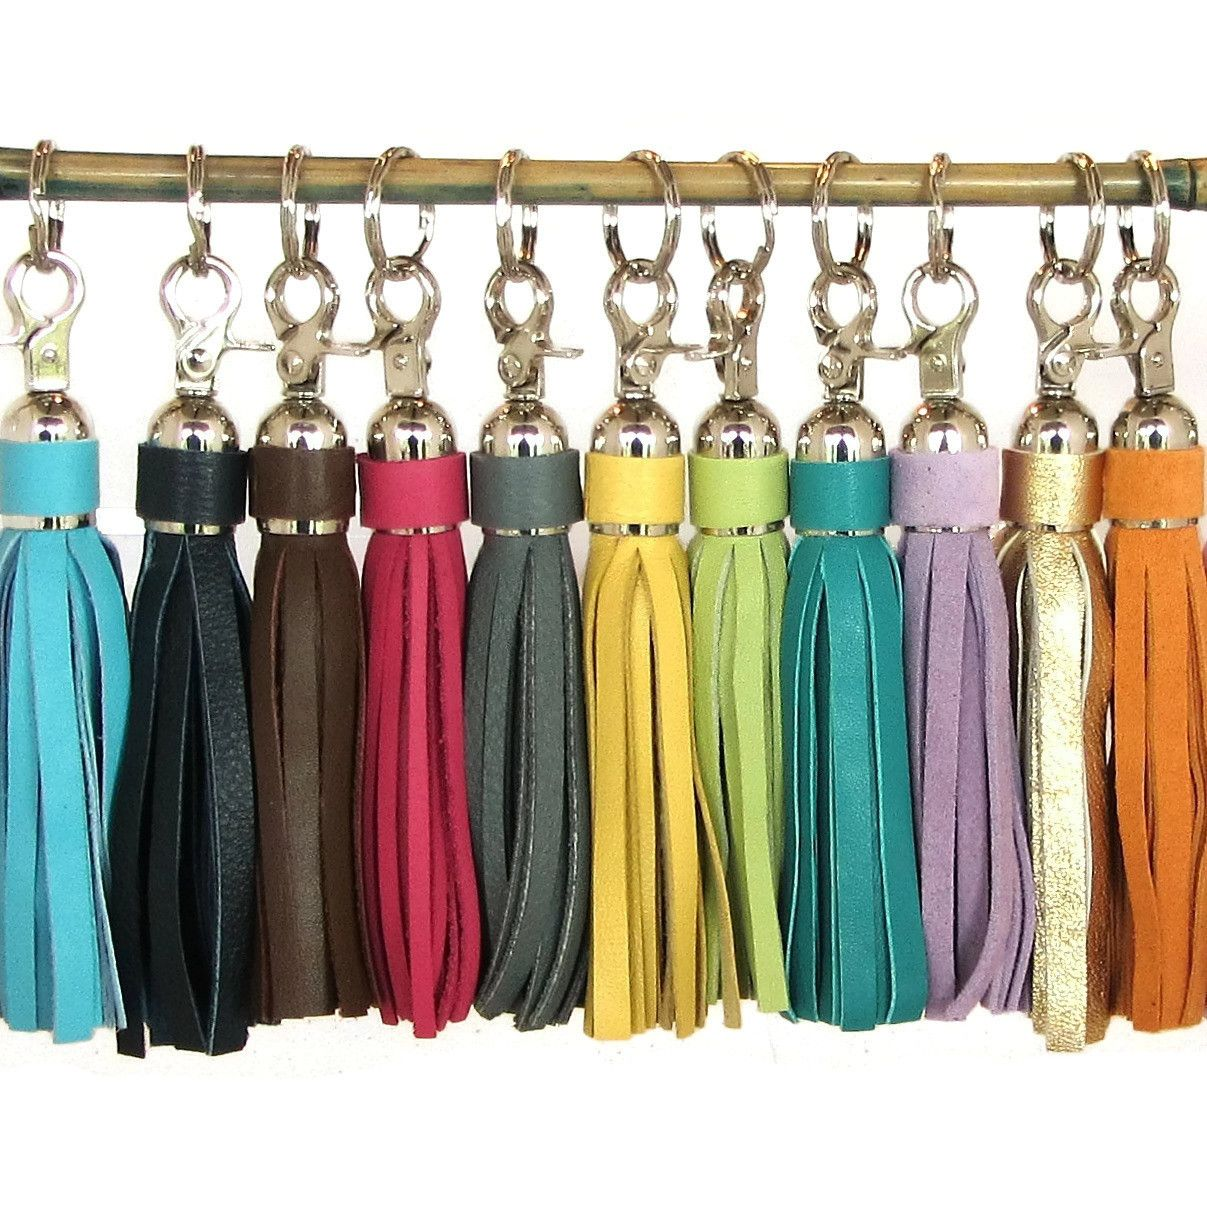 Silver Leather Tassels in 25 Colors! (http://www.lemonberrylane.com/silver-leather-tassels/) #tassels